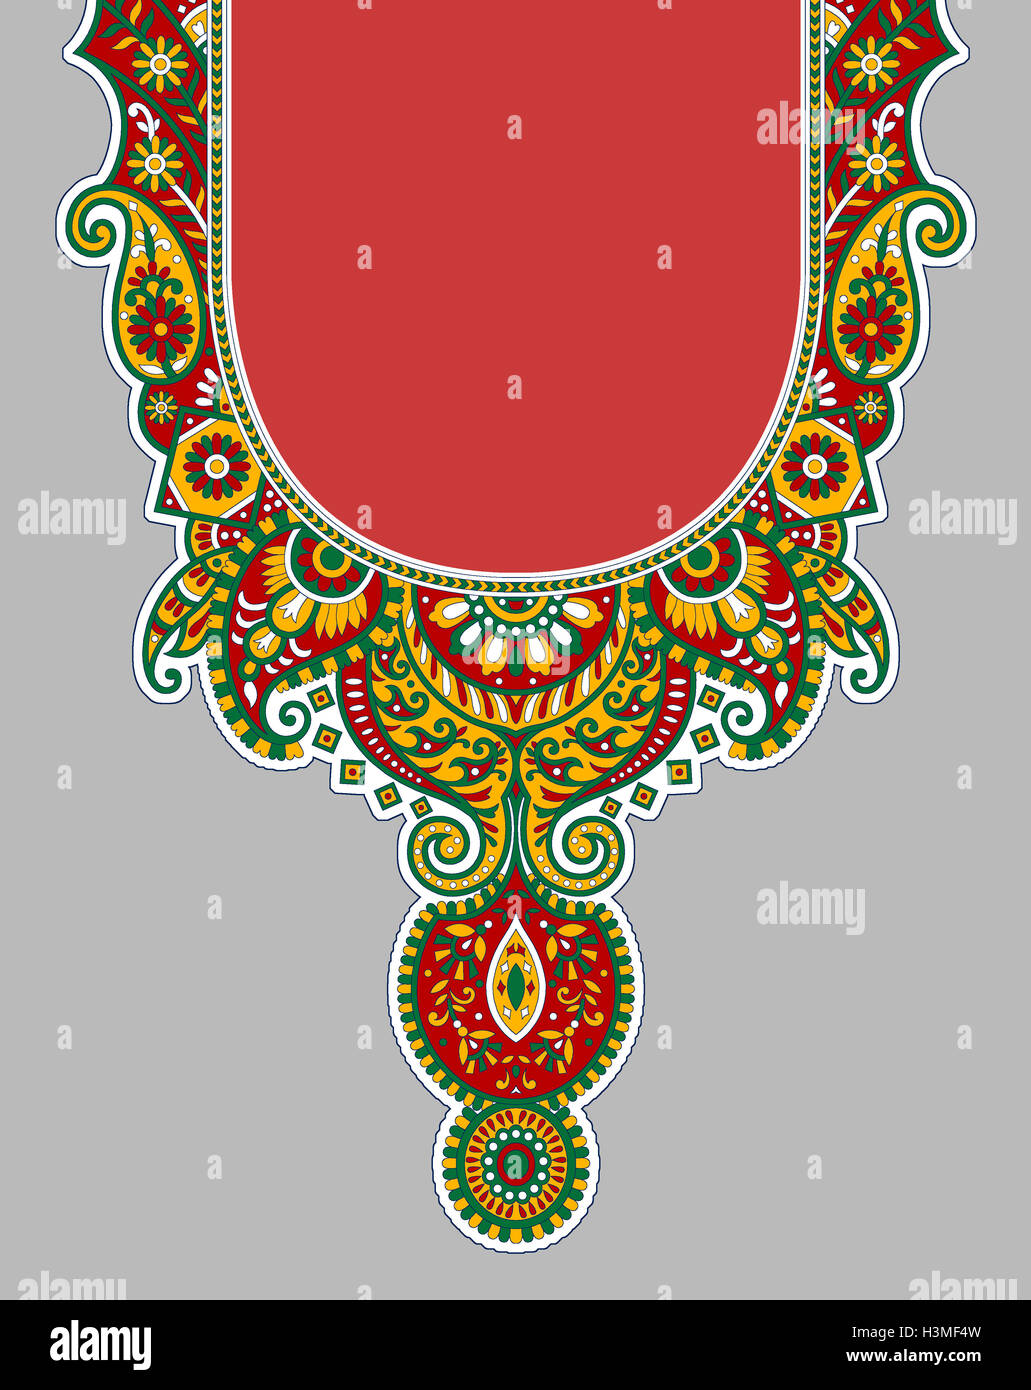 Neck Designs For Salwar Kameez High Resolution Stock Photography And Images Alamy